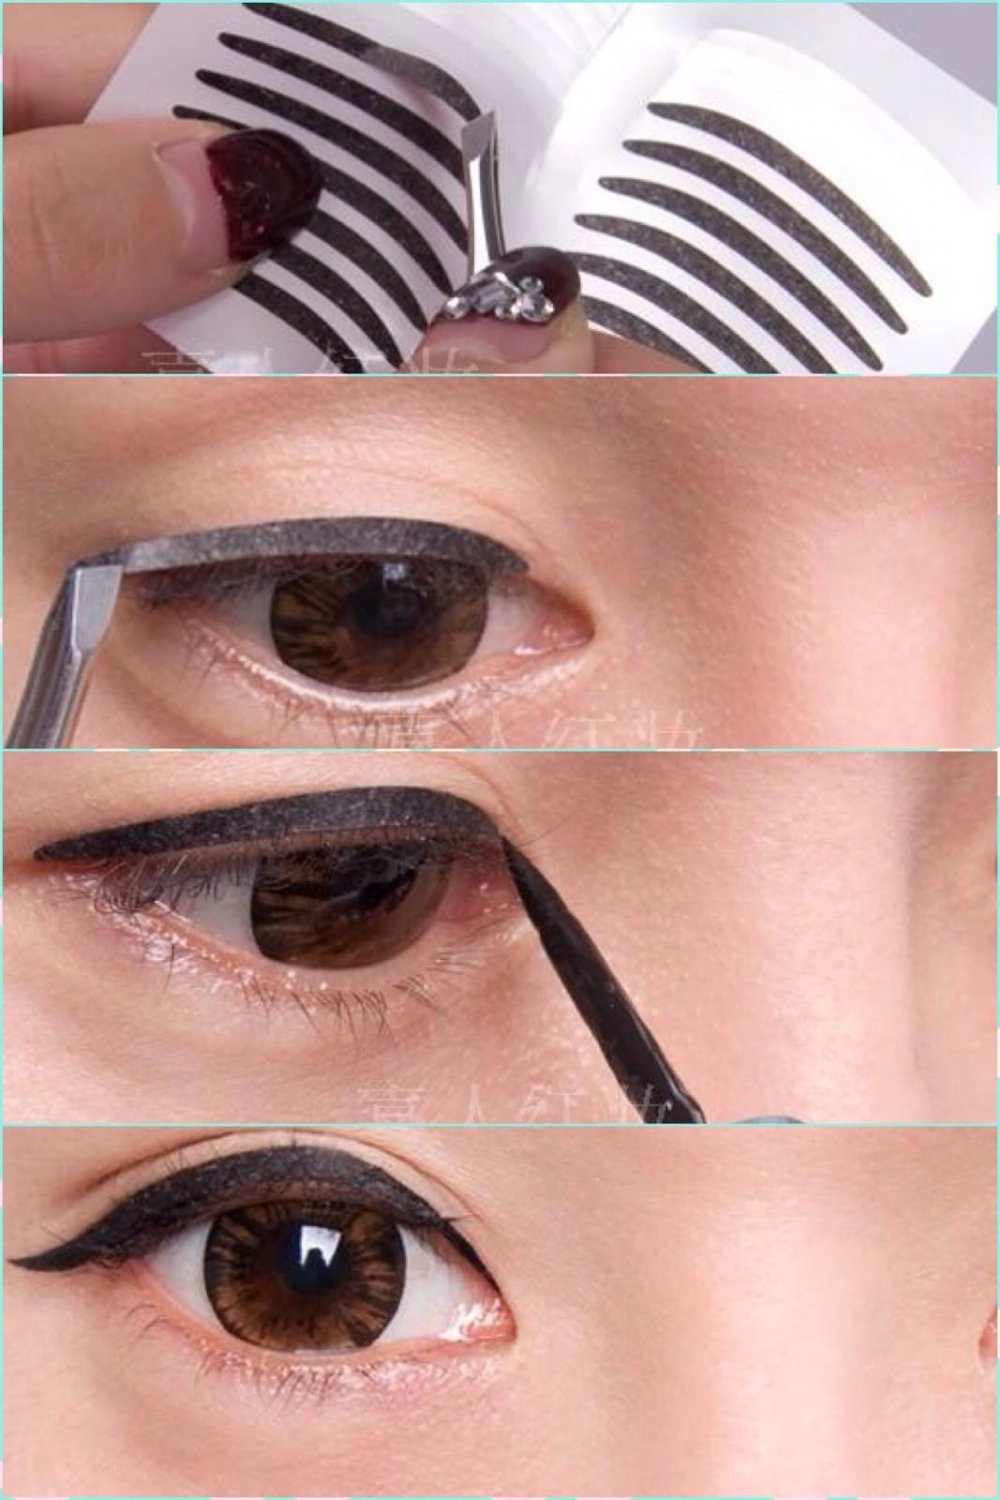 168 Pairs Wide/Narrow Double Eyelid Sticker Tape Technical Eye TapeS TRANSPARENT